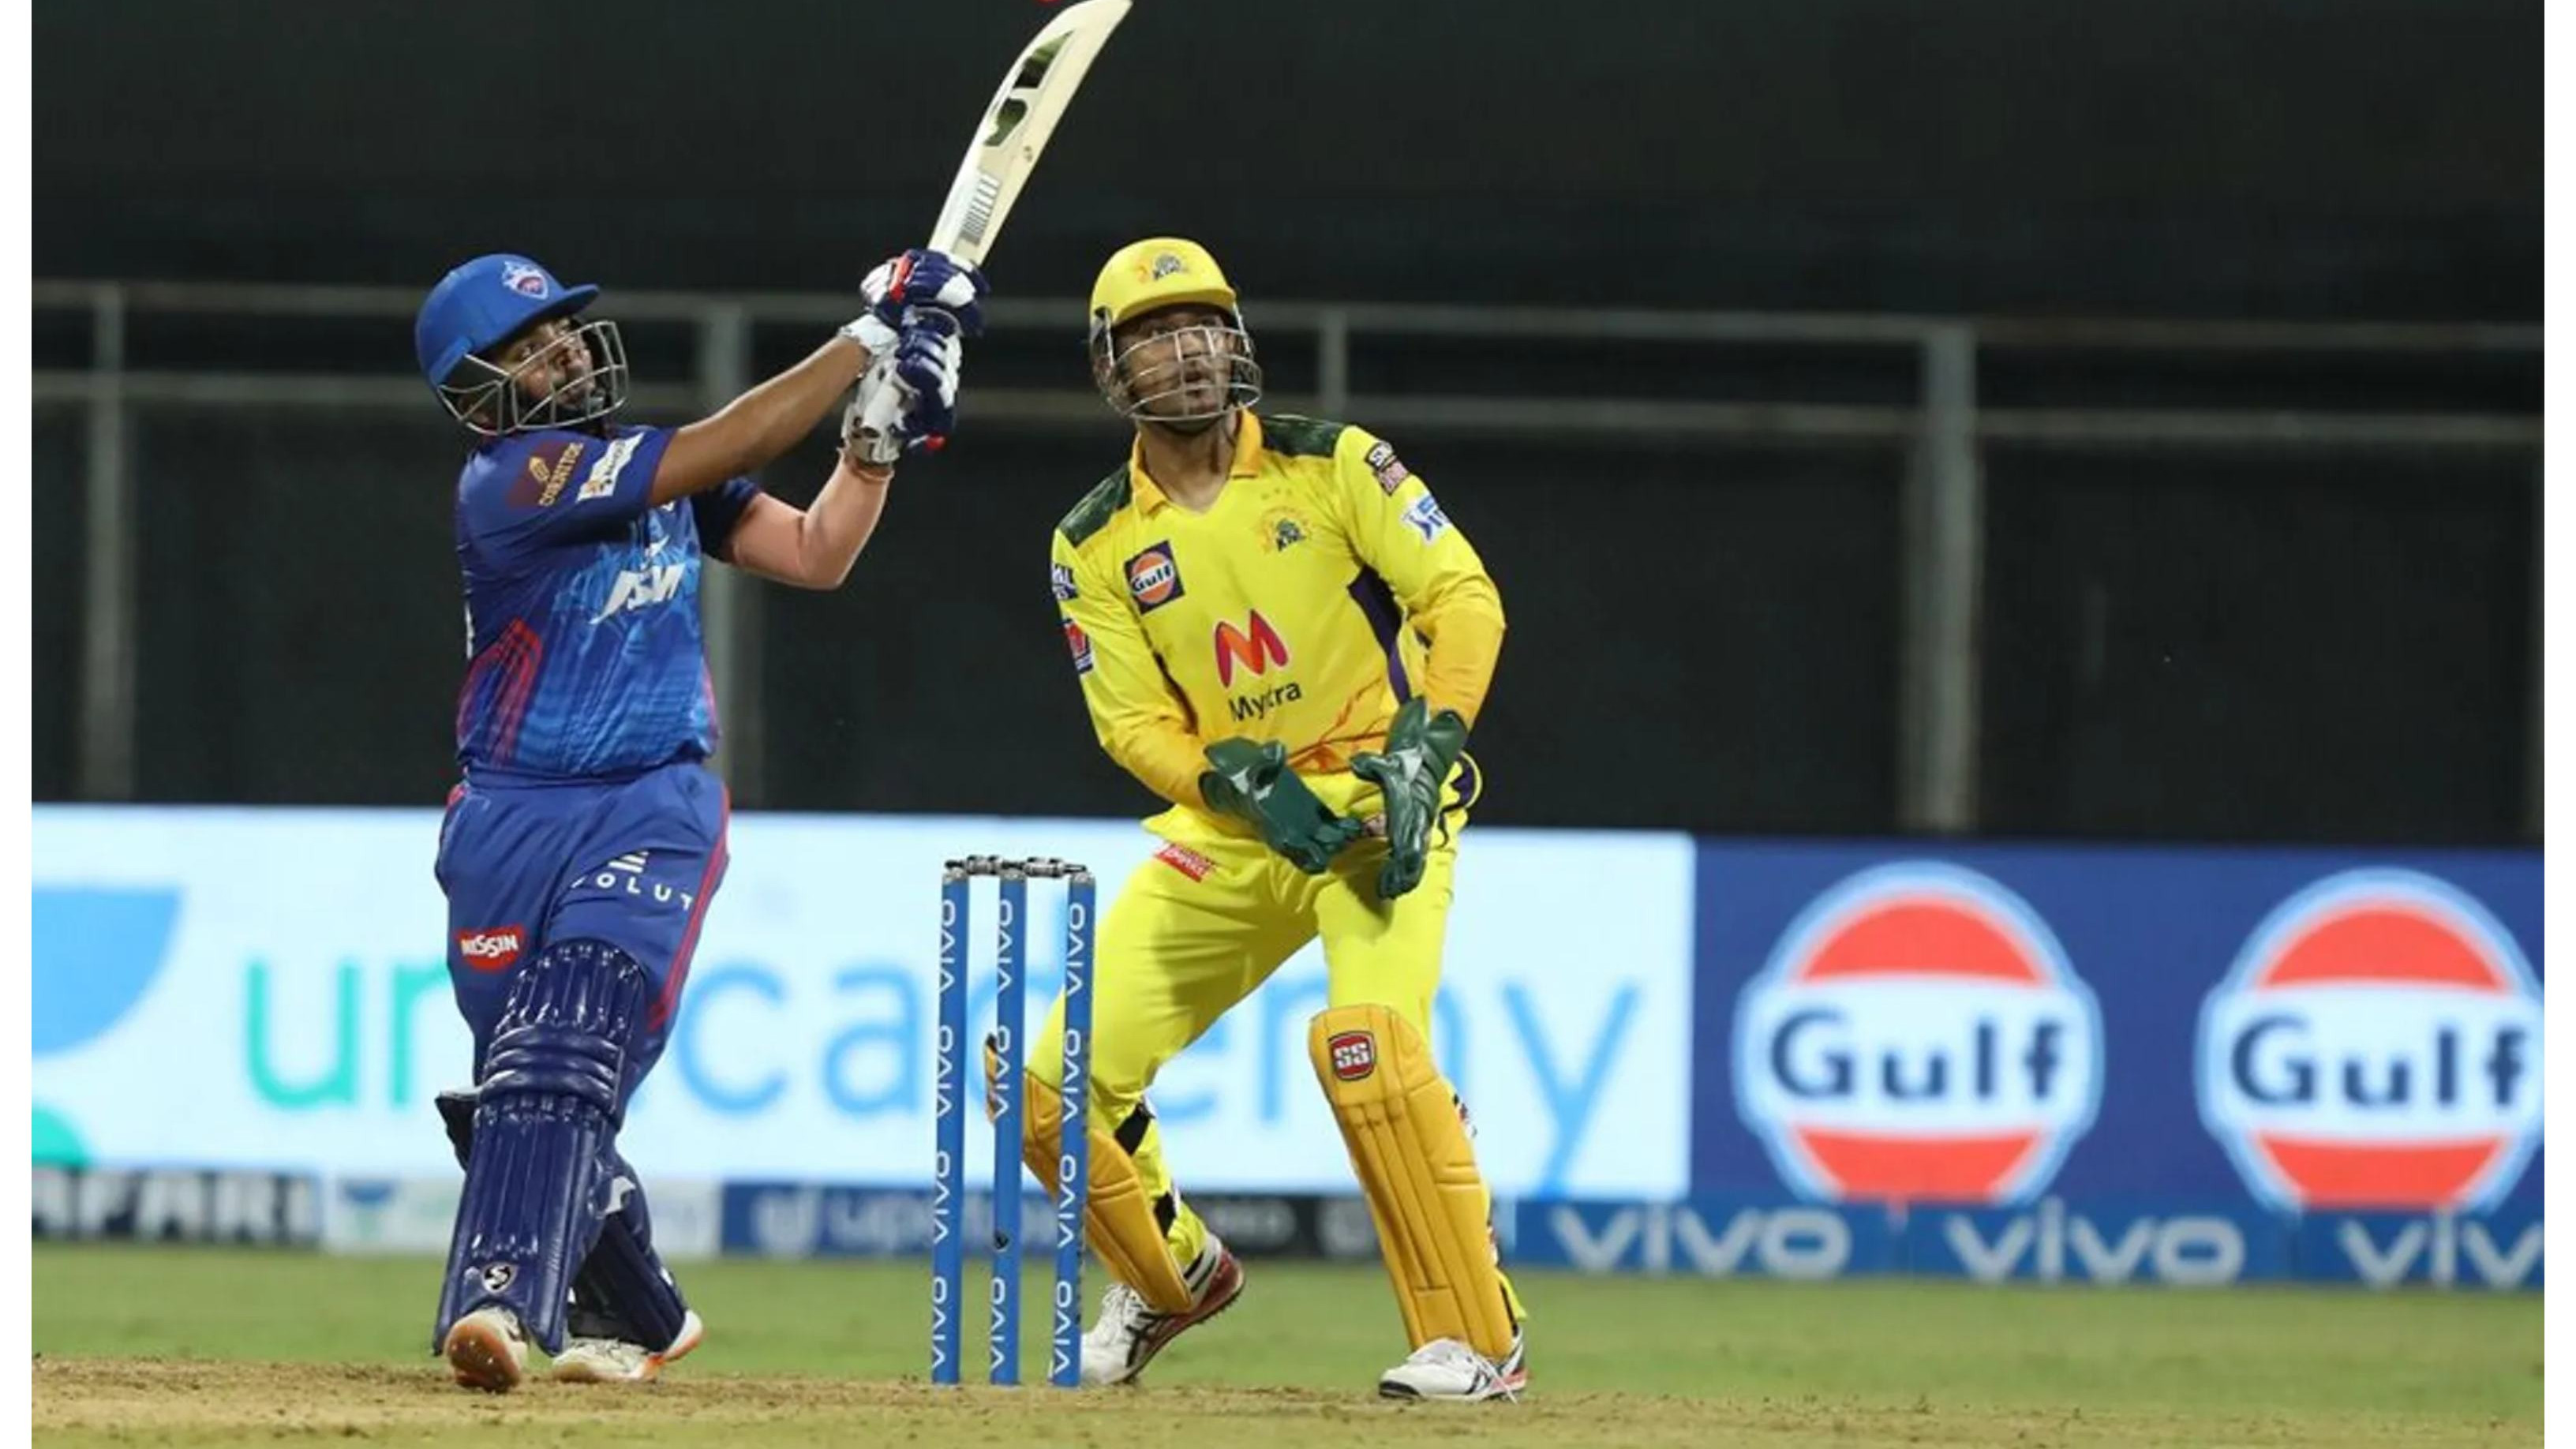 """IPL 2021: MS Dhoni rues """"poor execution of bowlers"""" after CSK's defeat against DC"""